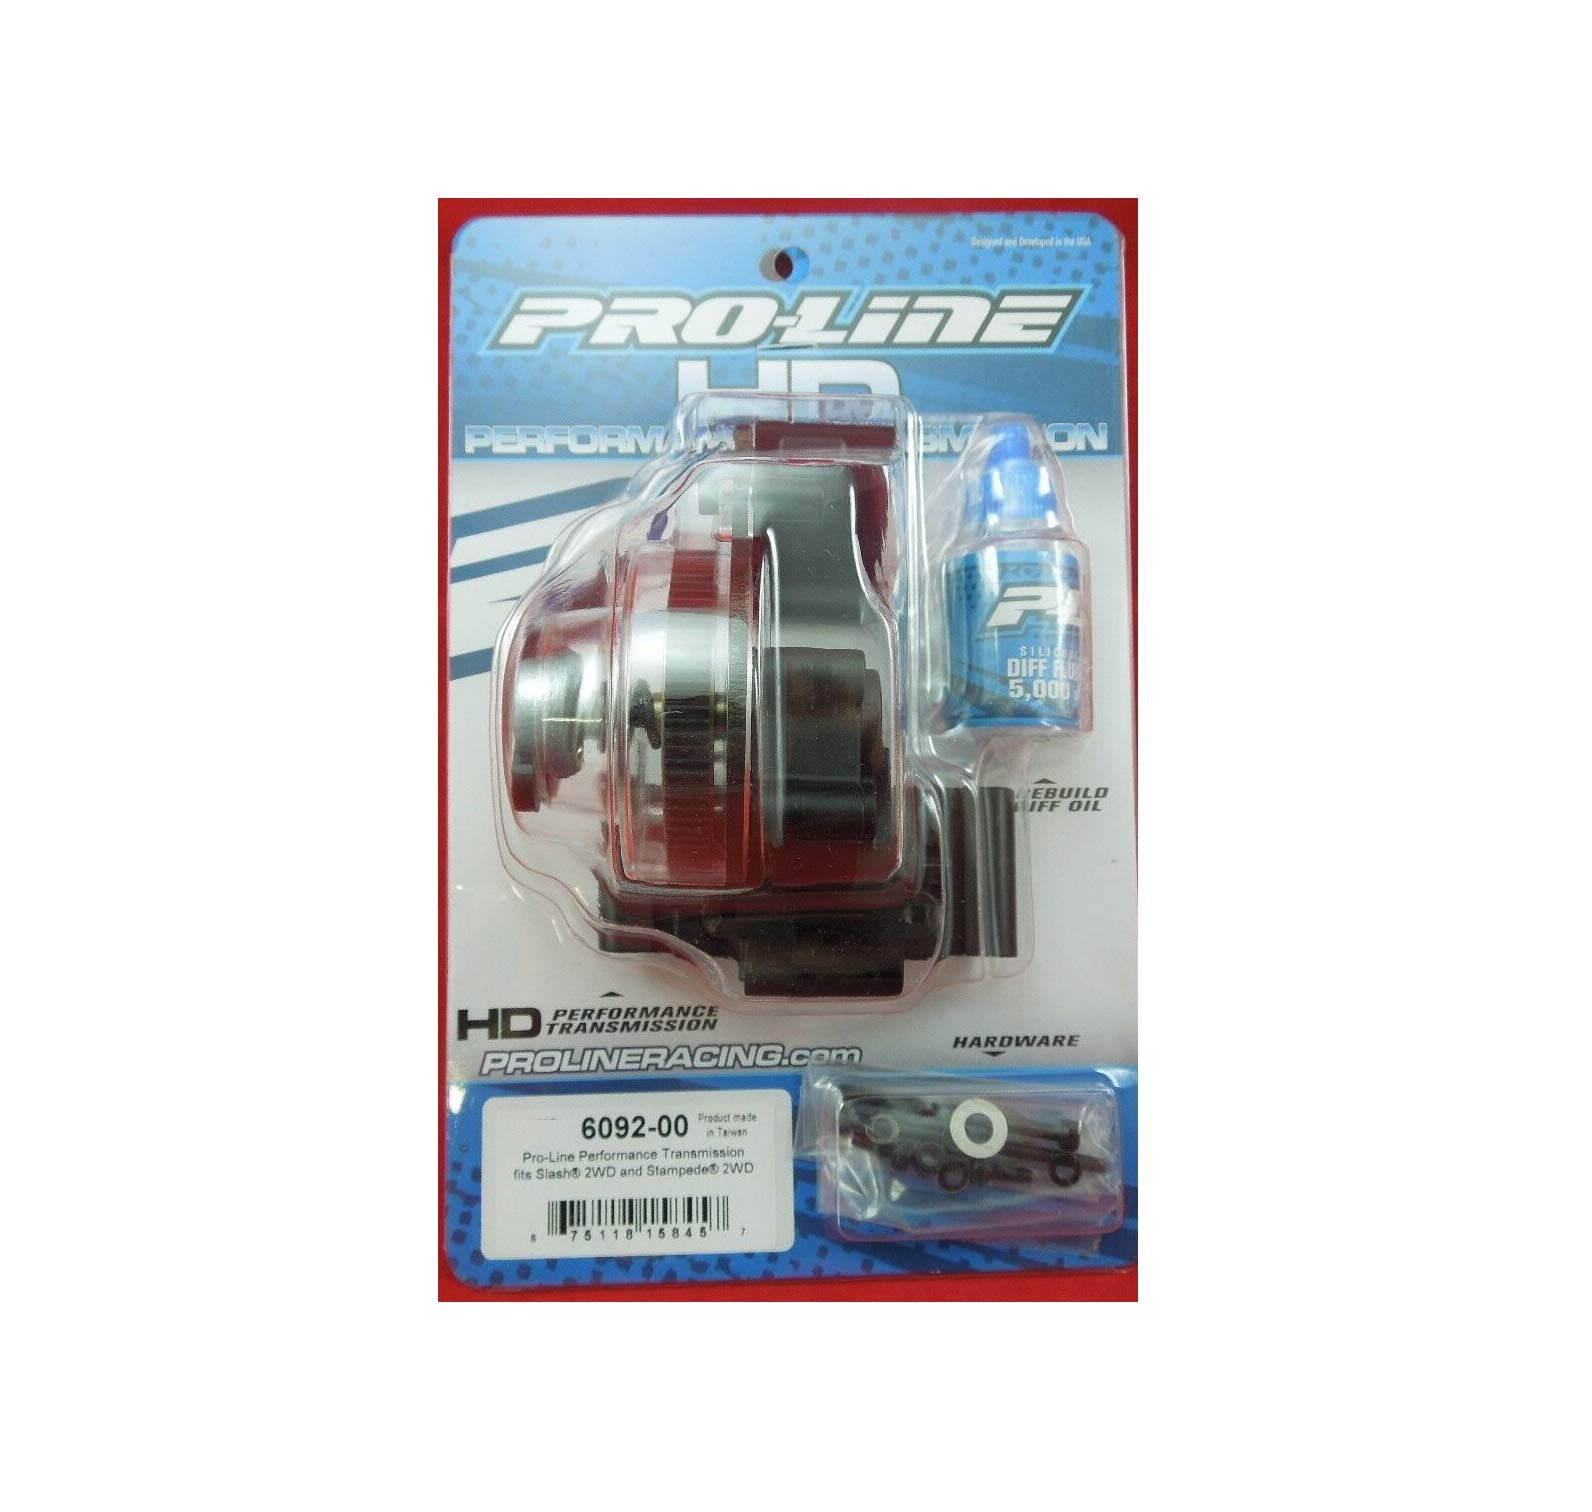 PROFLINE Hobby RC Performance Transmission TRAXAZ Raptor Slash 2wd 060-9200 New Quick Arrive